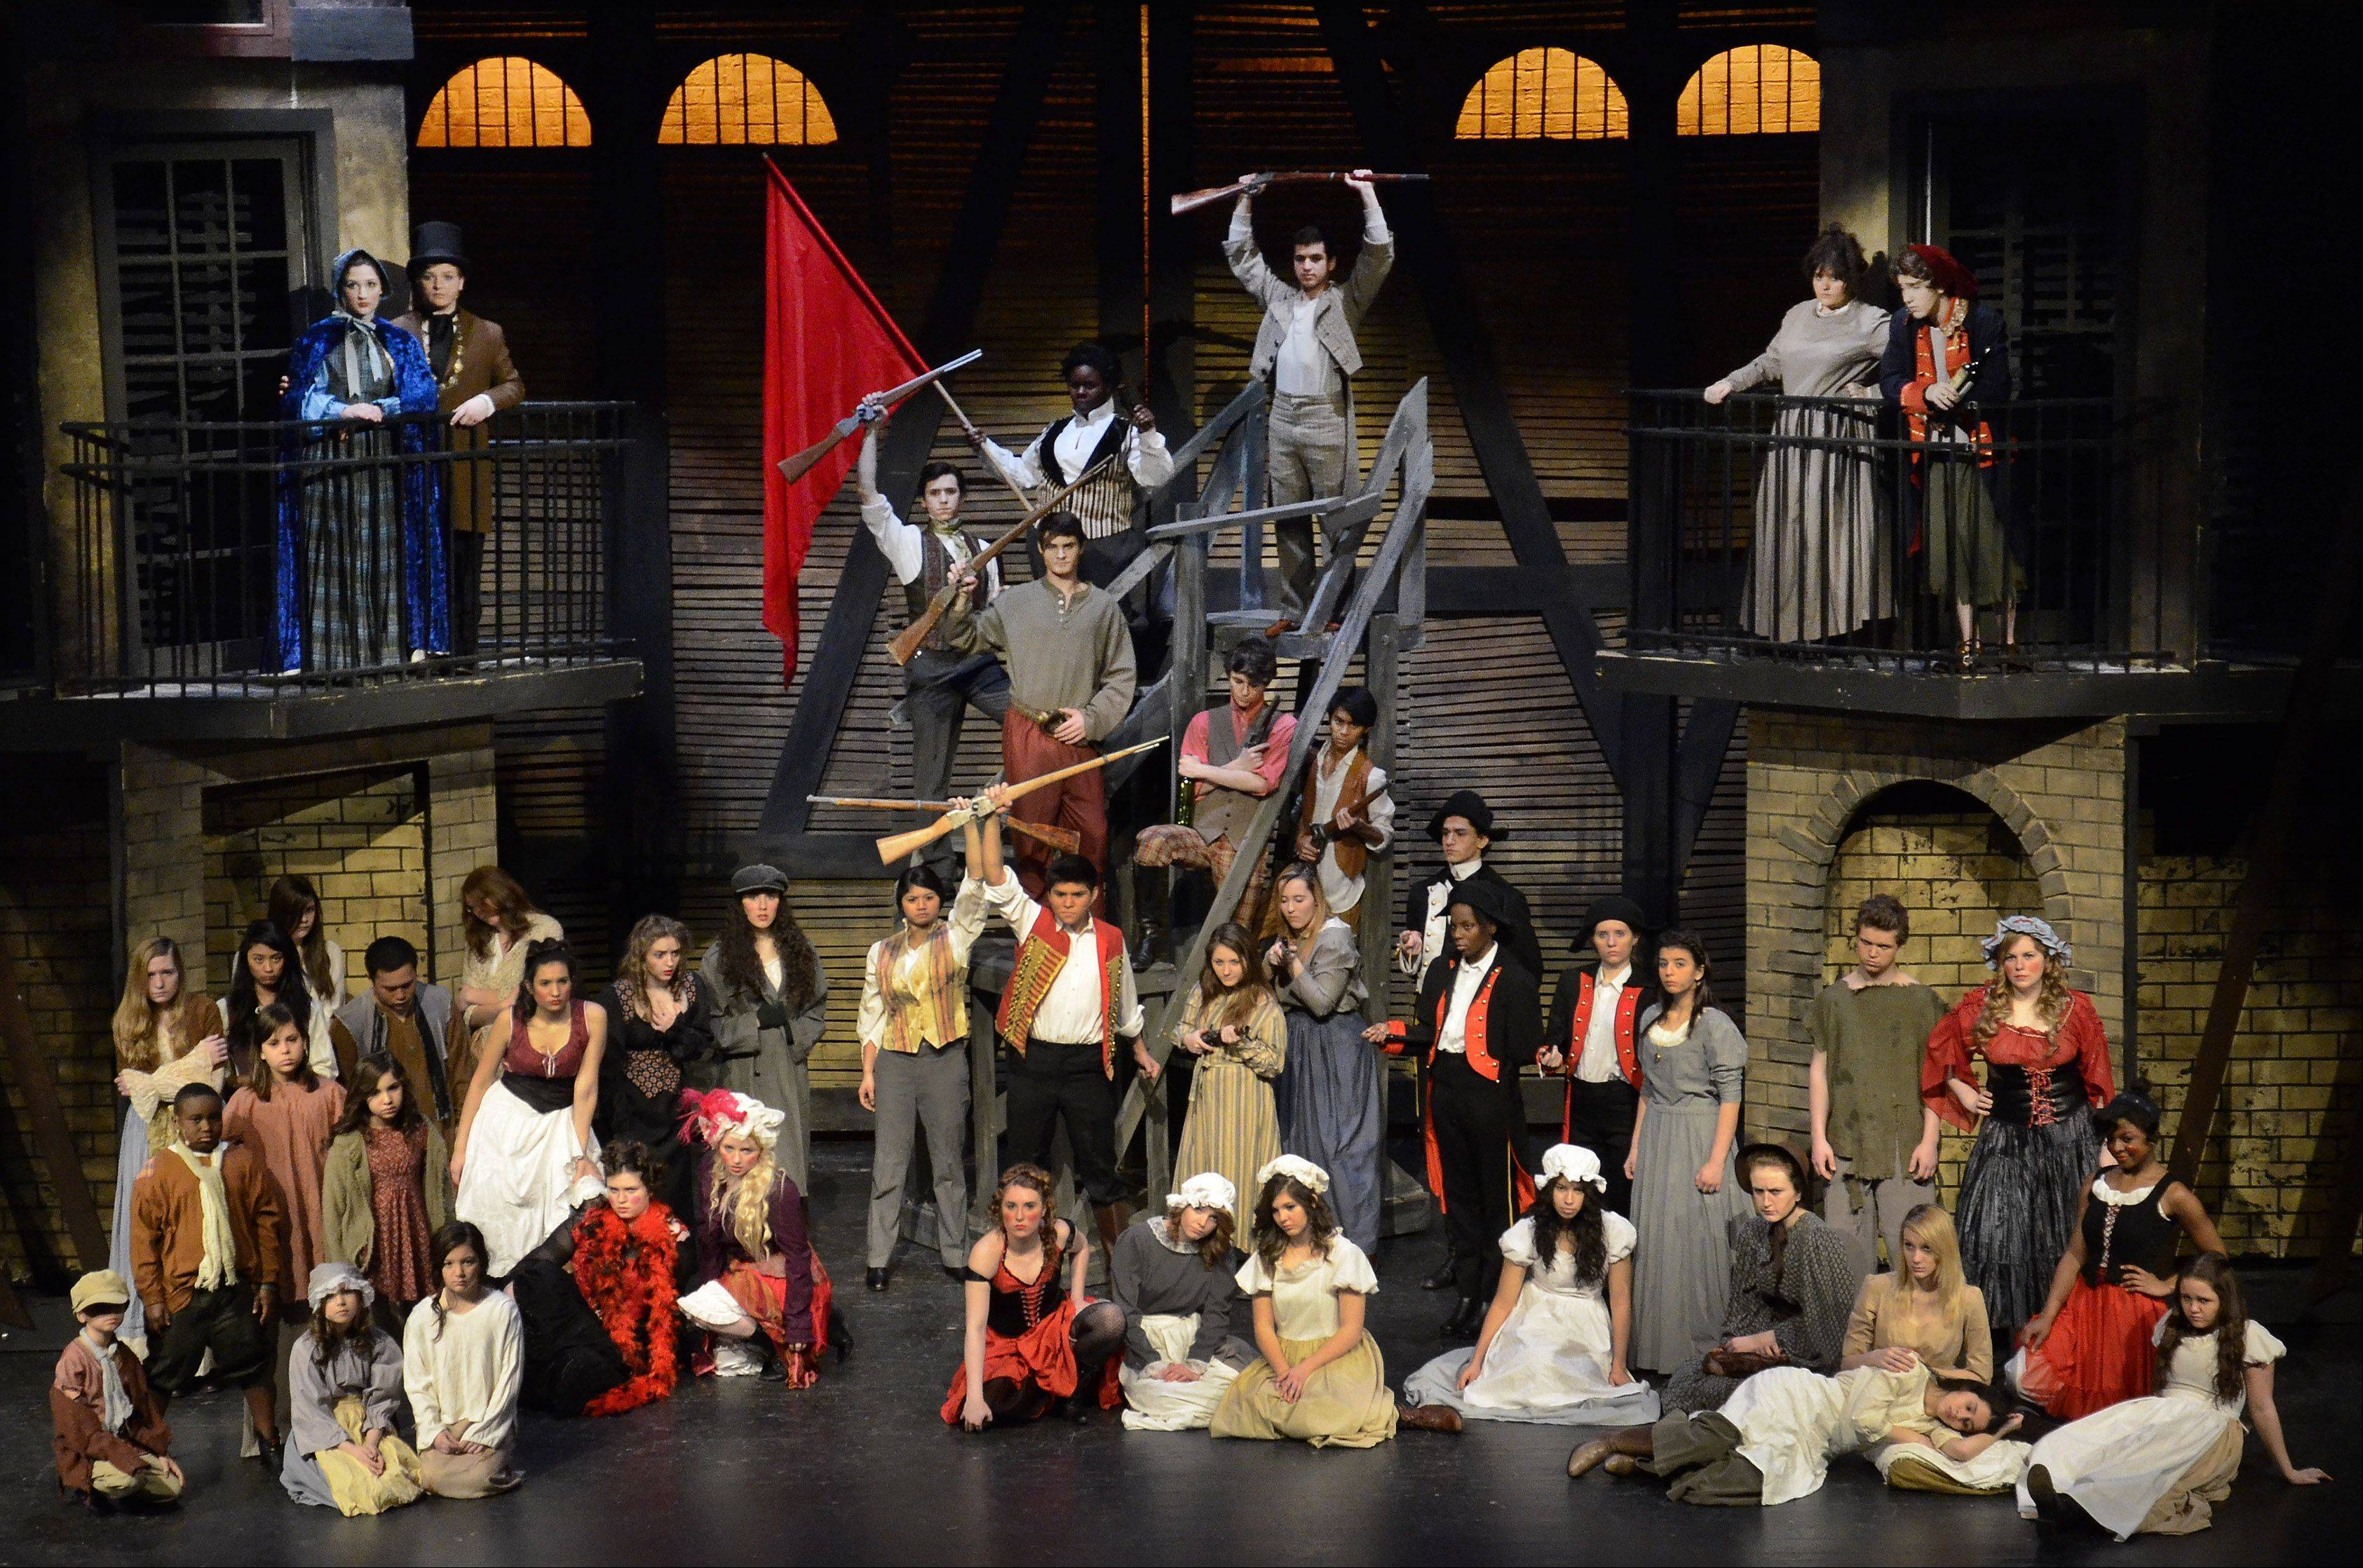 This is the ensemble cast for Streamwood High School�s production of �Les Miserables� at last week�s dress rehearsal. The elaborate set design was made by master builder Joe Thomas and engineer Pete Ryan.